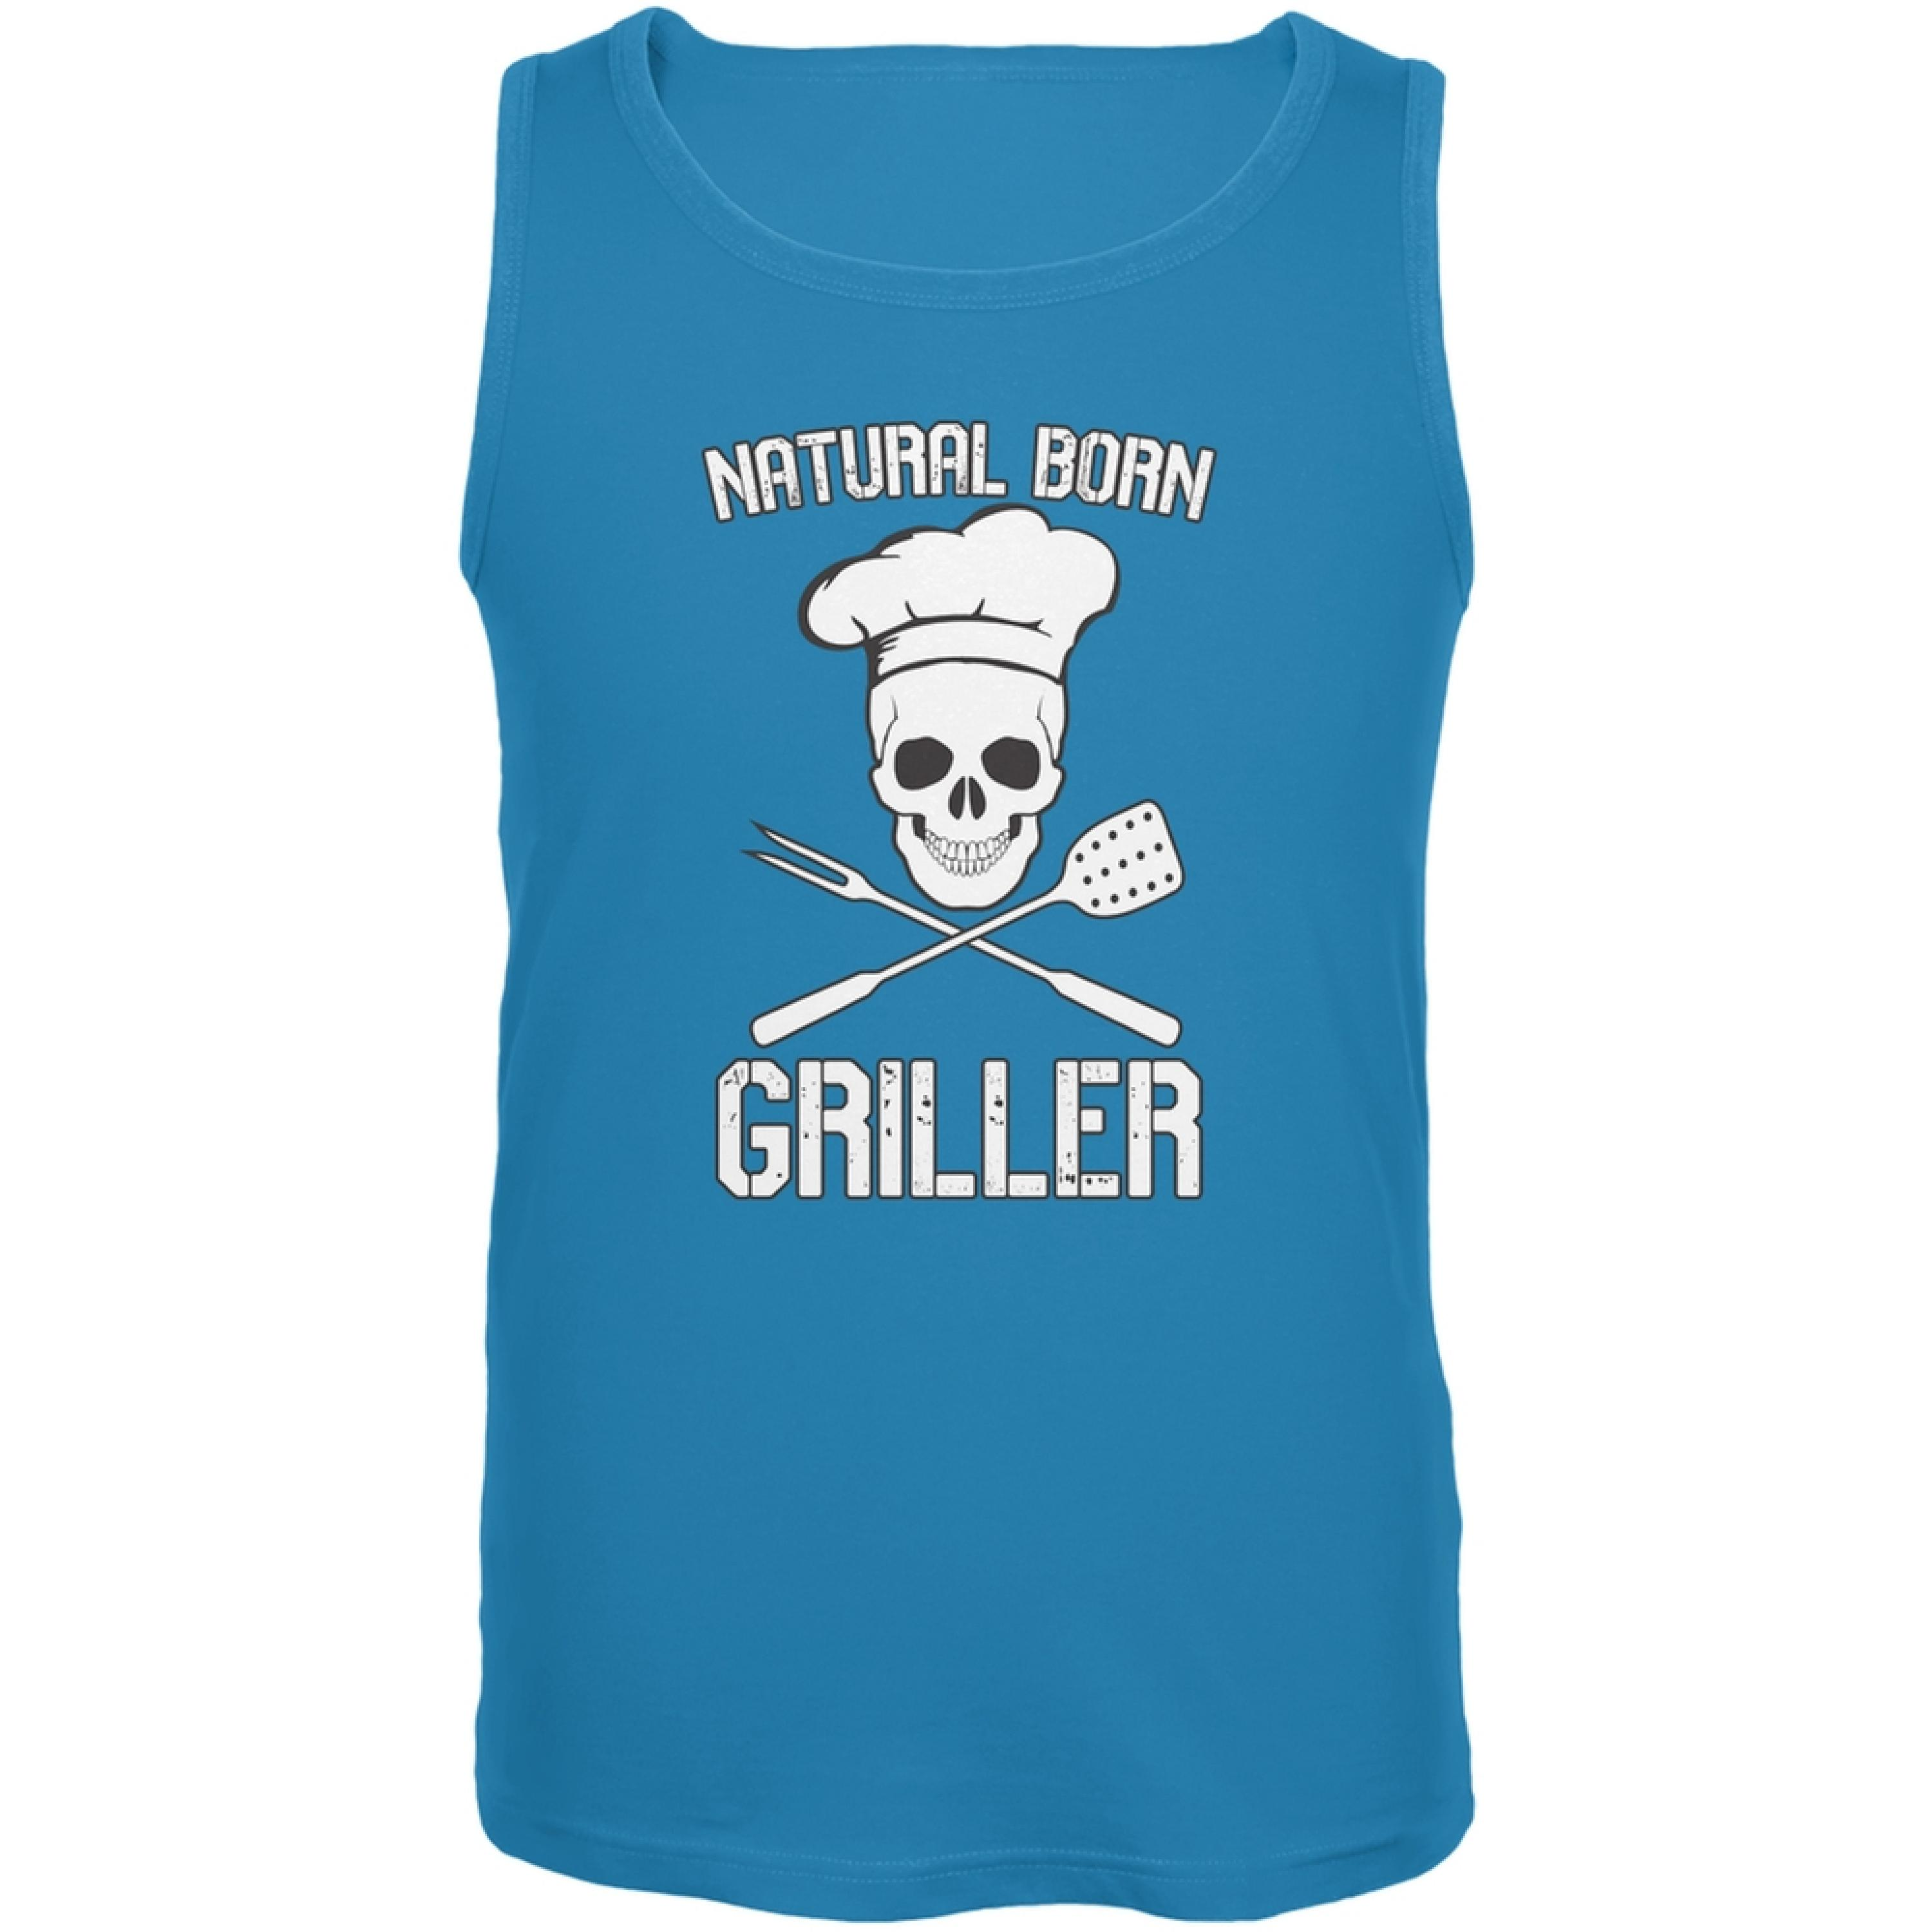 Natural Born Griller Turquoise Adult Tank Top